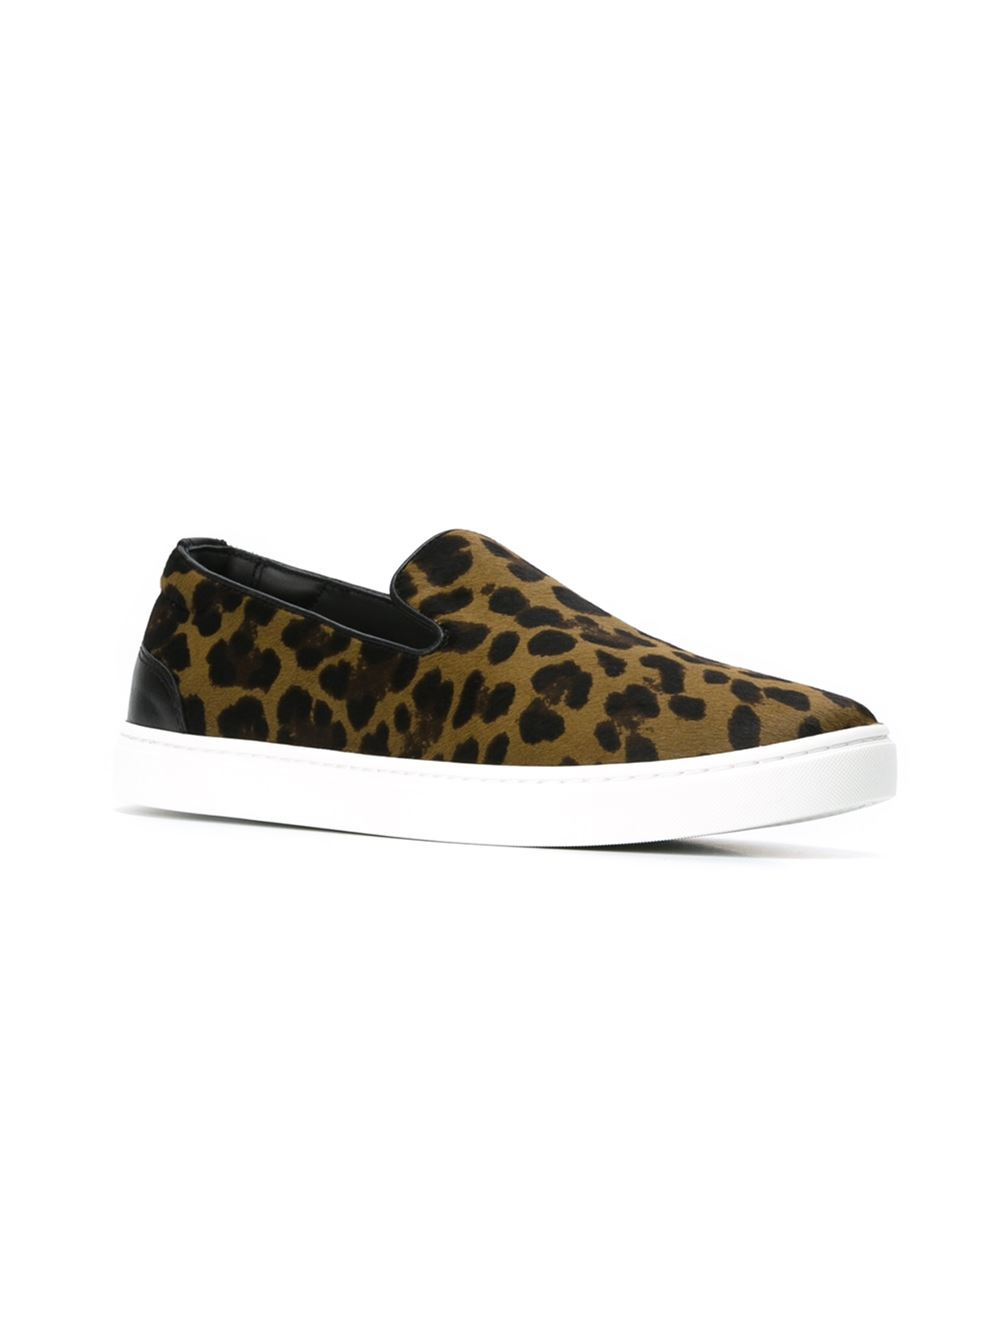 dolce gabbana leopard print slip on sneakers in green for men lyst. Black Bedroom Furniture Sets. Home Design Ideas